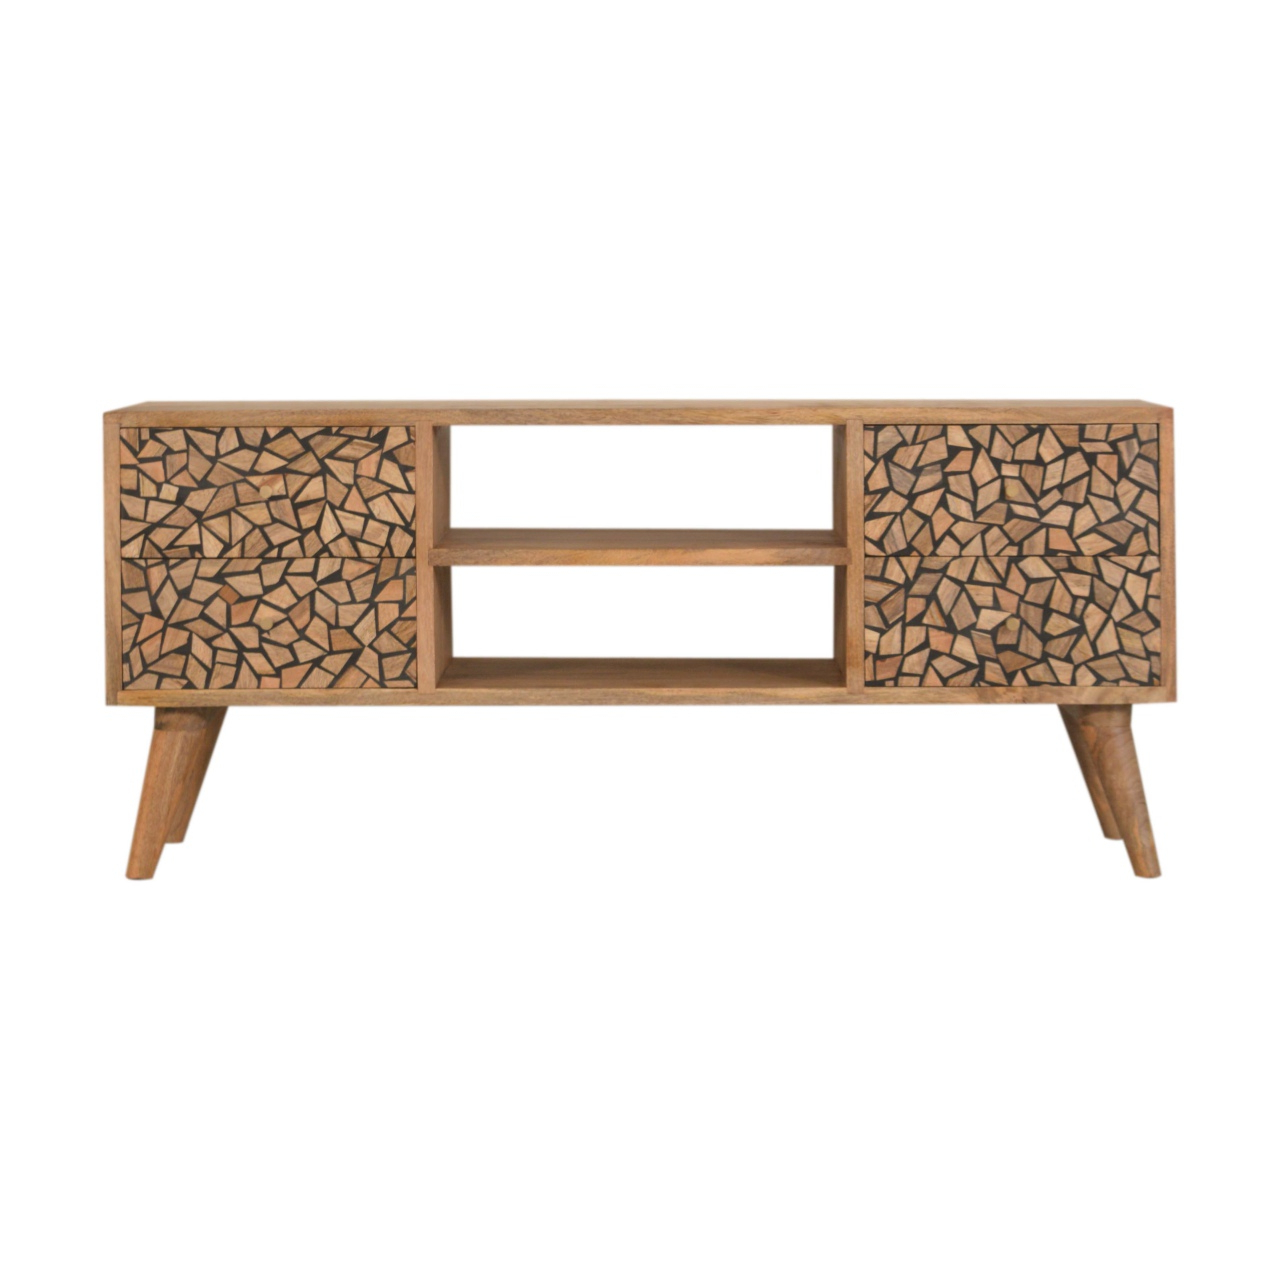 Solid Oak Finished Mango Wood Scandinavian Style 4 Drawer Within Scandi 2 Drawer White Tv Media Unit Stands (View 9 of 20)